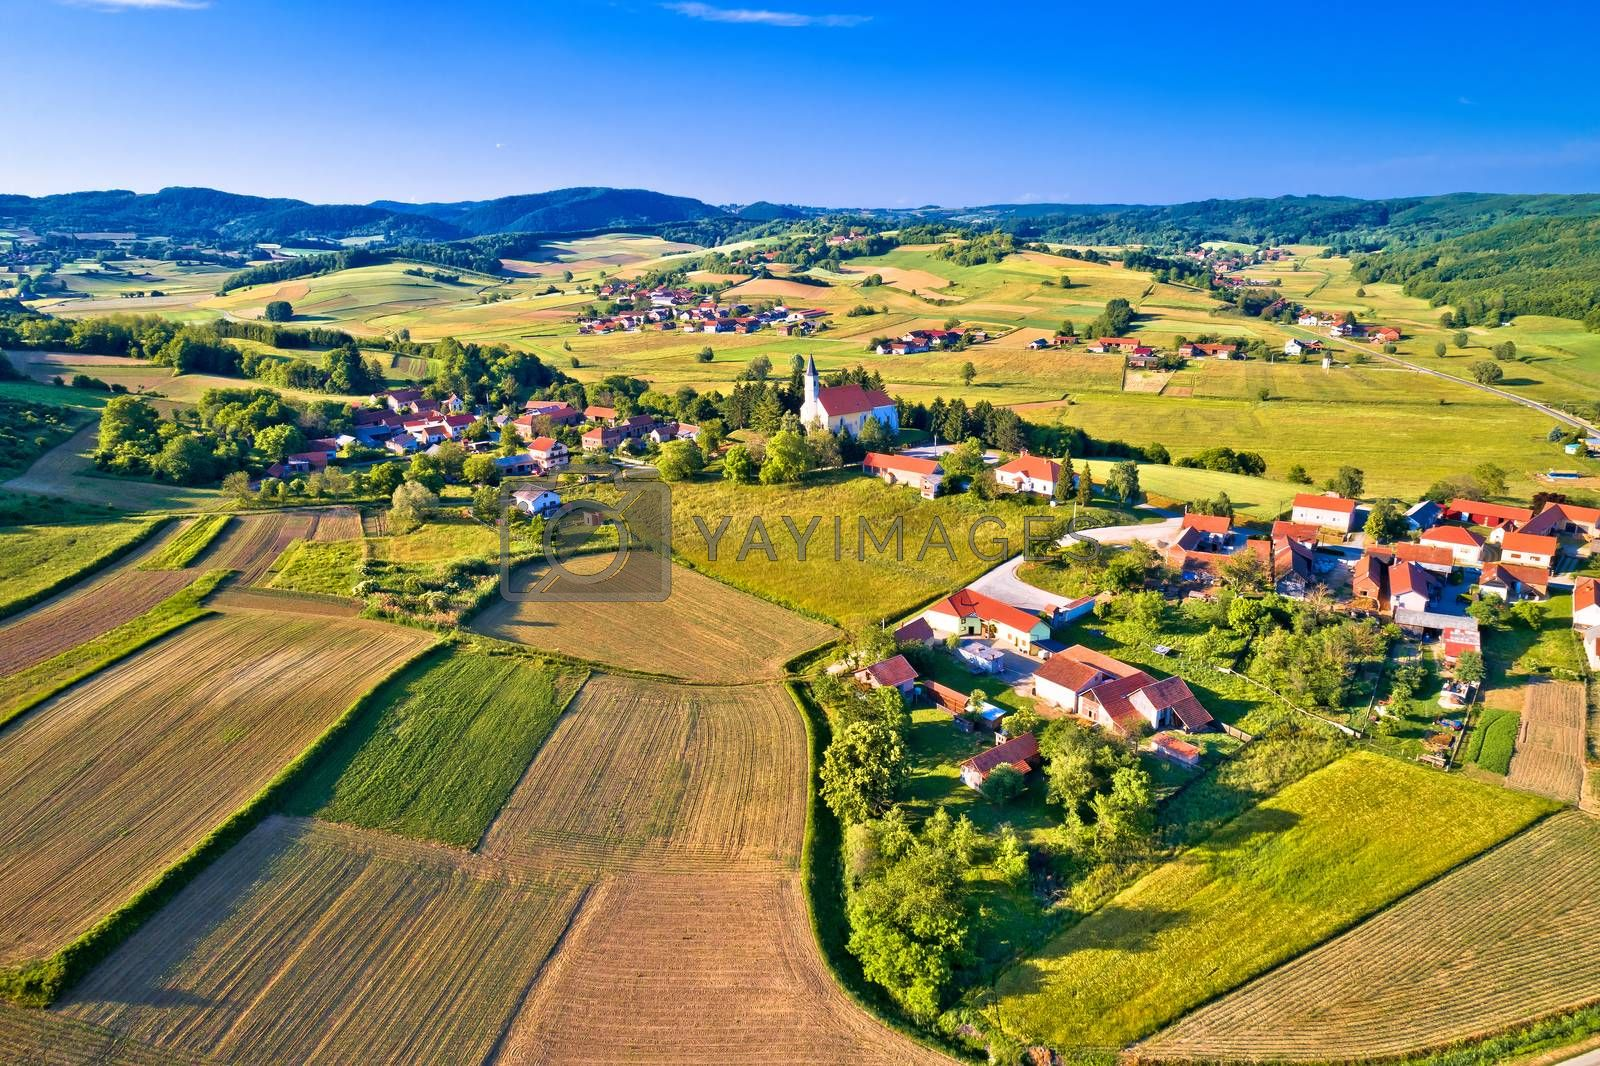 Village of Glogovnica and green nature aerial view, Prigorje region of Croatia